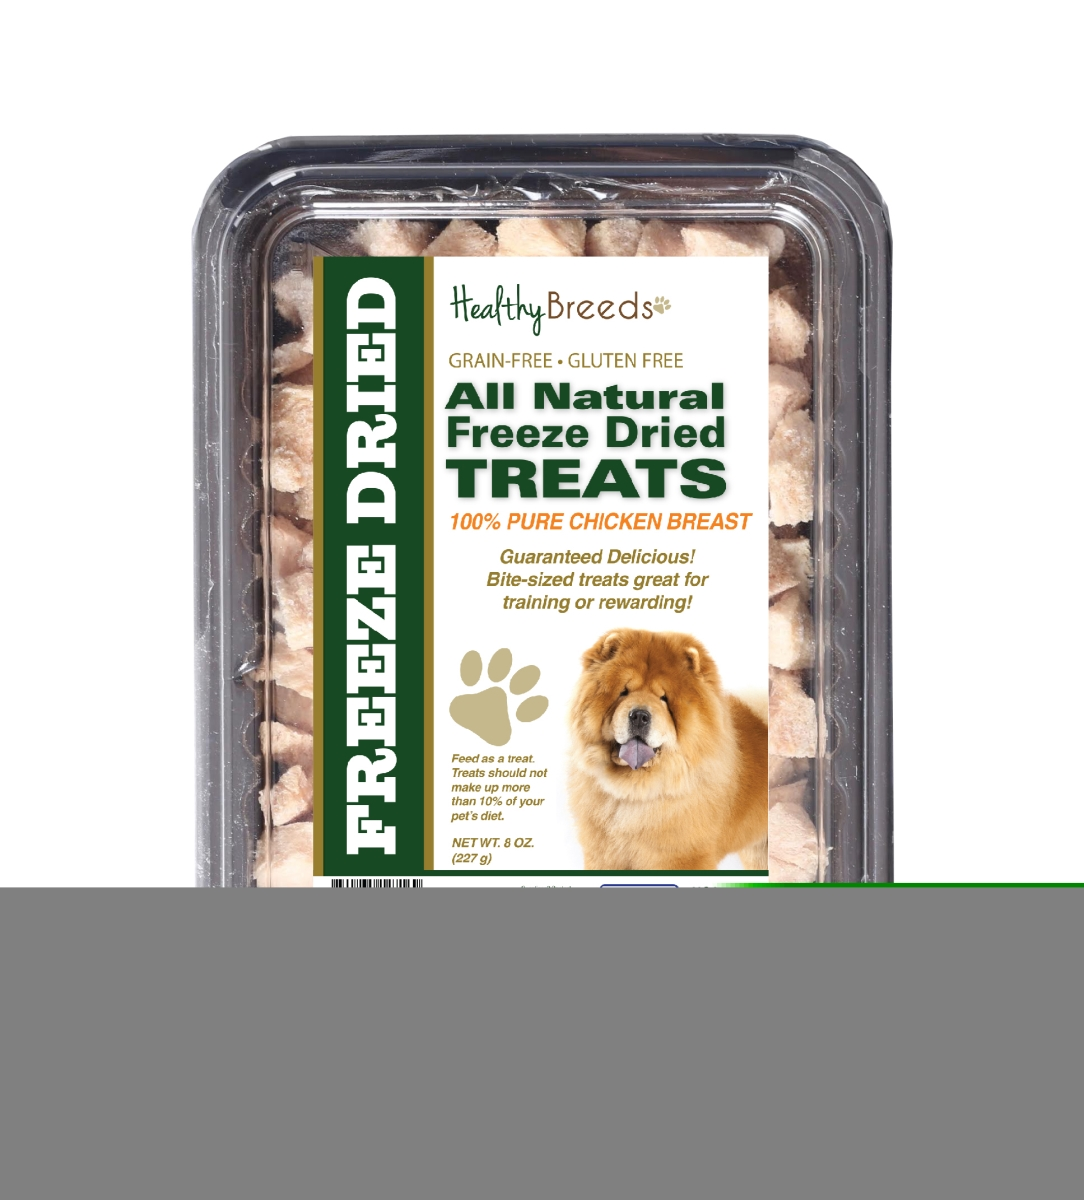 Healthy Breeds 840235147169 8 oz Chow Chow All Natural Freeze Dried Treats Chicken Breast